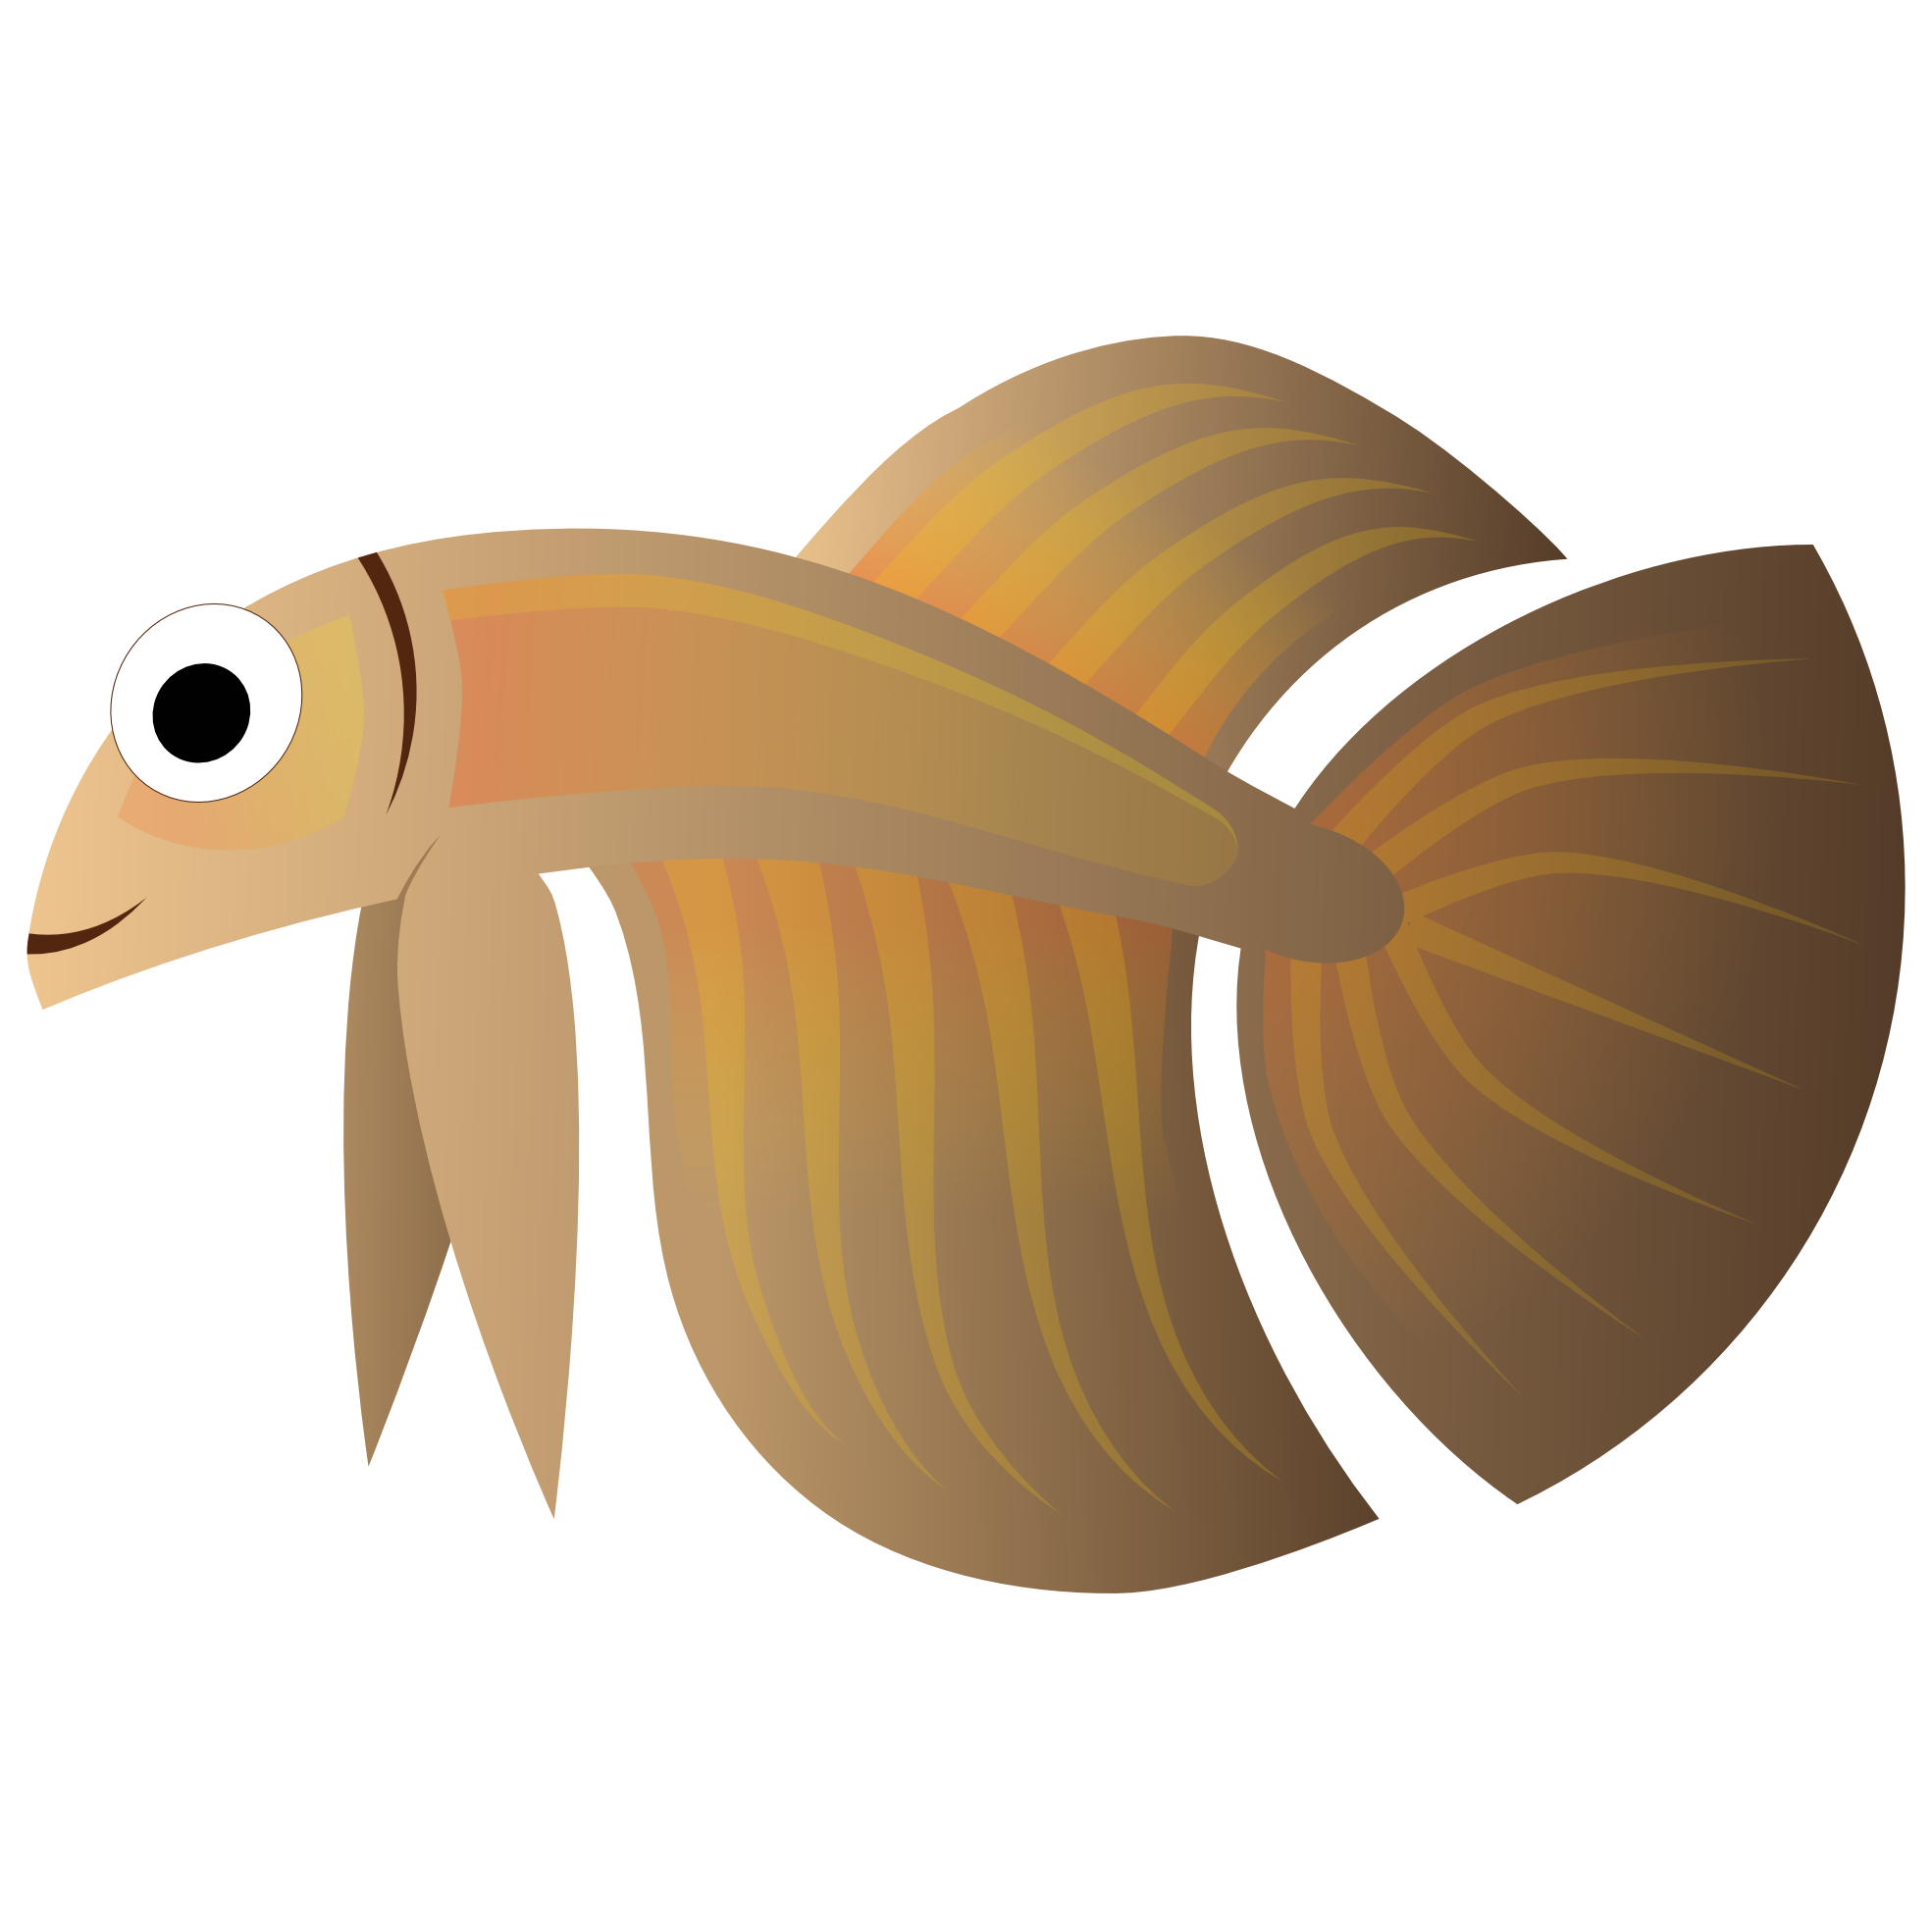 Brown fish clipart free stock clipartist.net » Clip Art » Abstract Fish 4 Scalable Vector Graphics SVG free stock